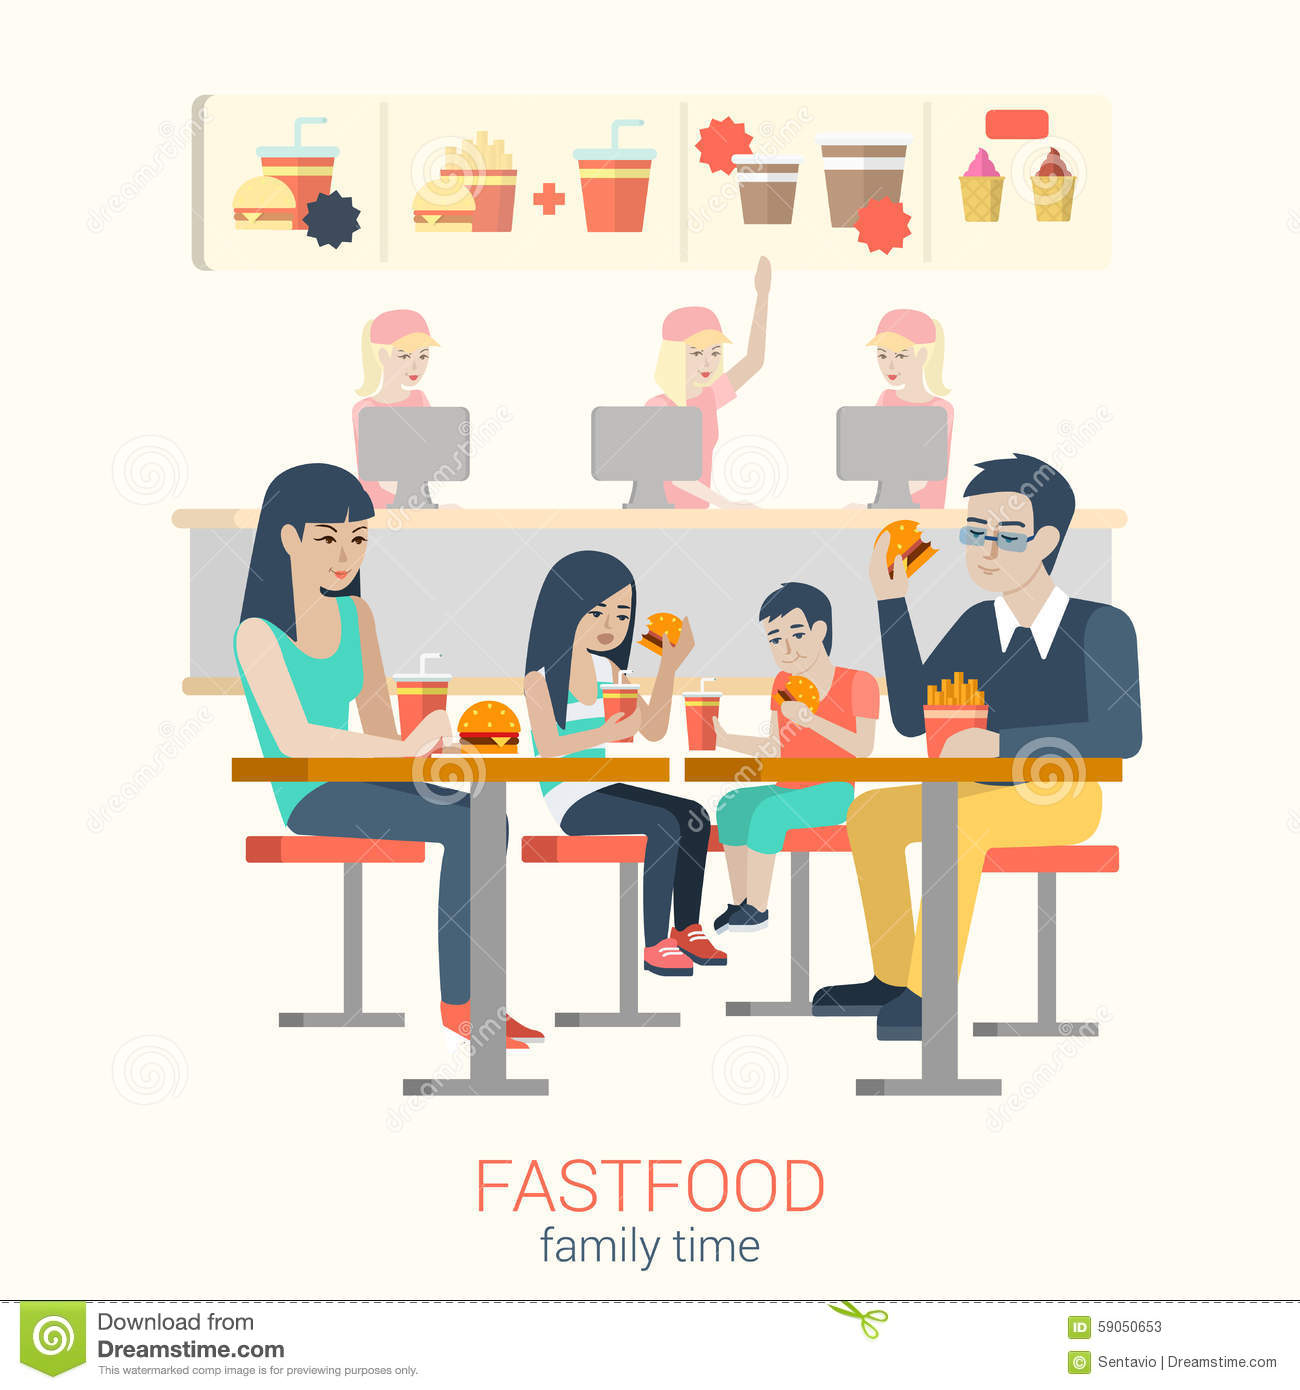 Family In Fastfood Cafe Eating Burger Fries Flat Vector